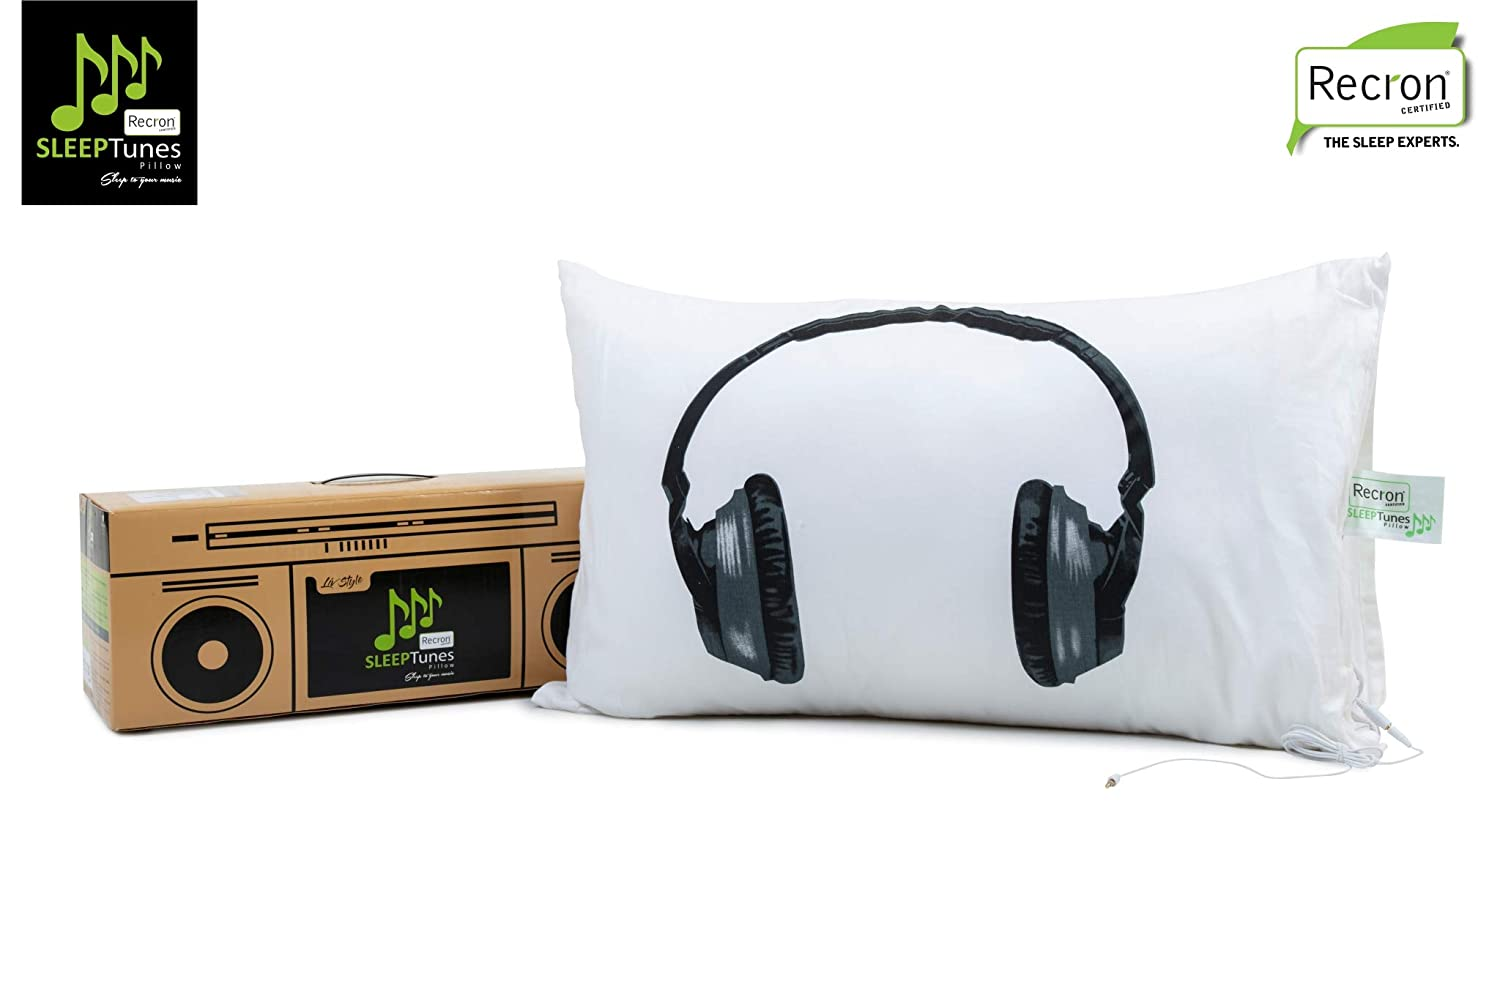 Recron Certified Sleeptunes Fibre Pillow With Pillow